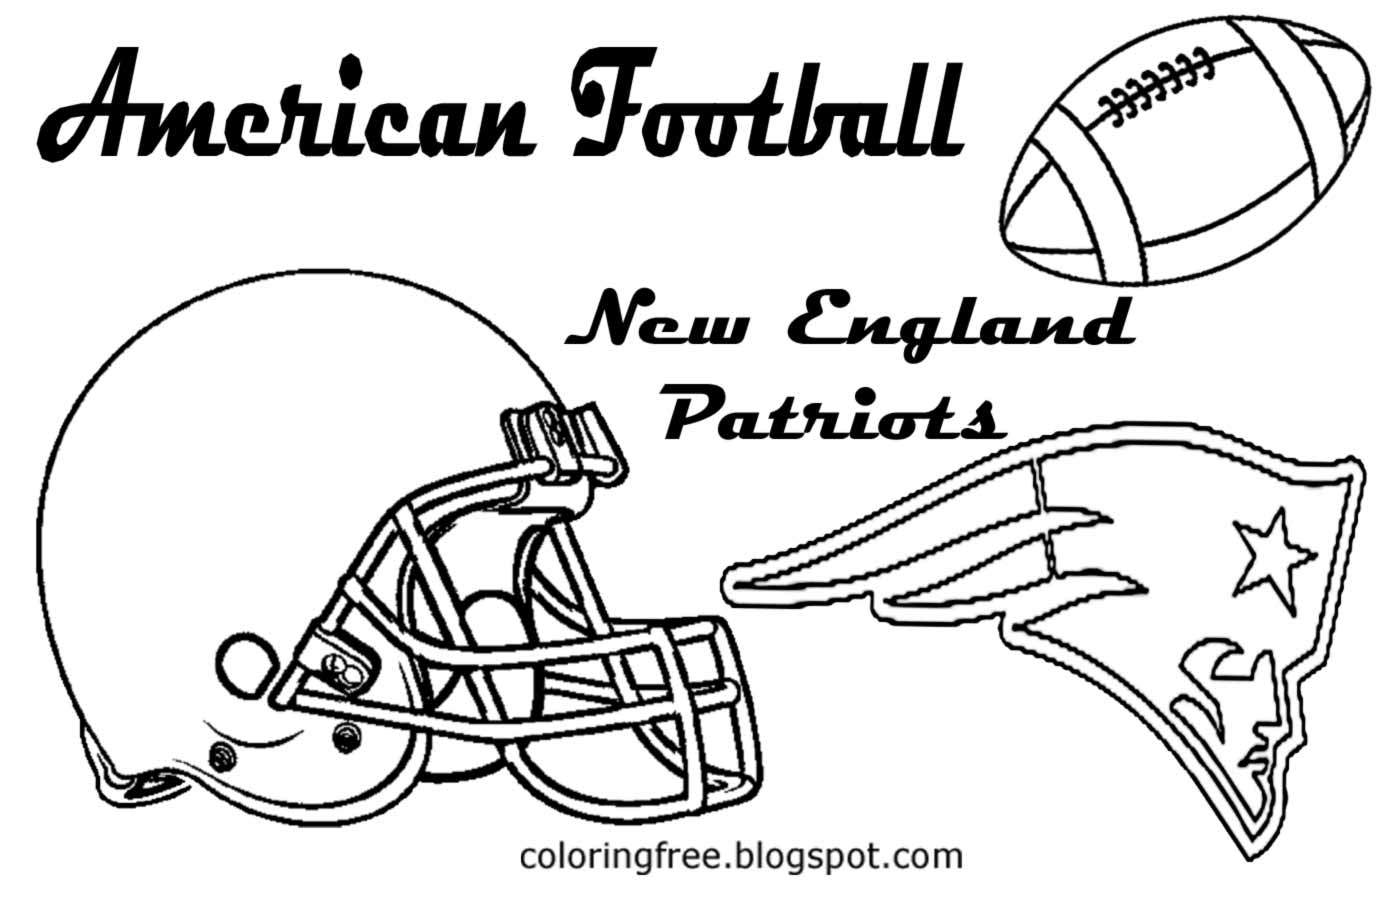 Free patriots coloring pages ~ Free Coloring Pages Printable Pictures To Color Kids ...